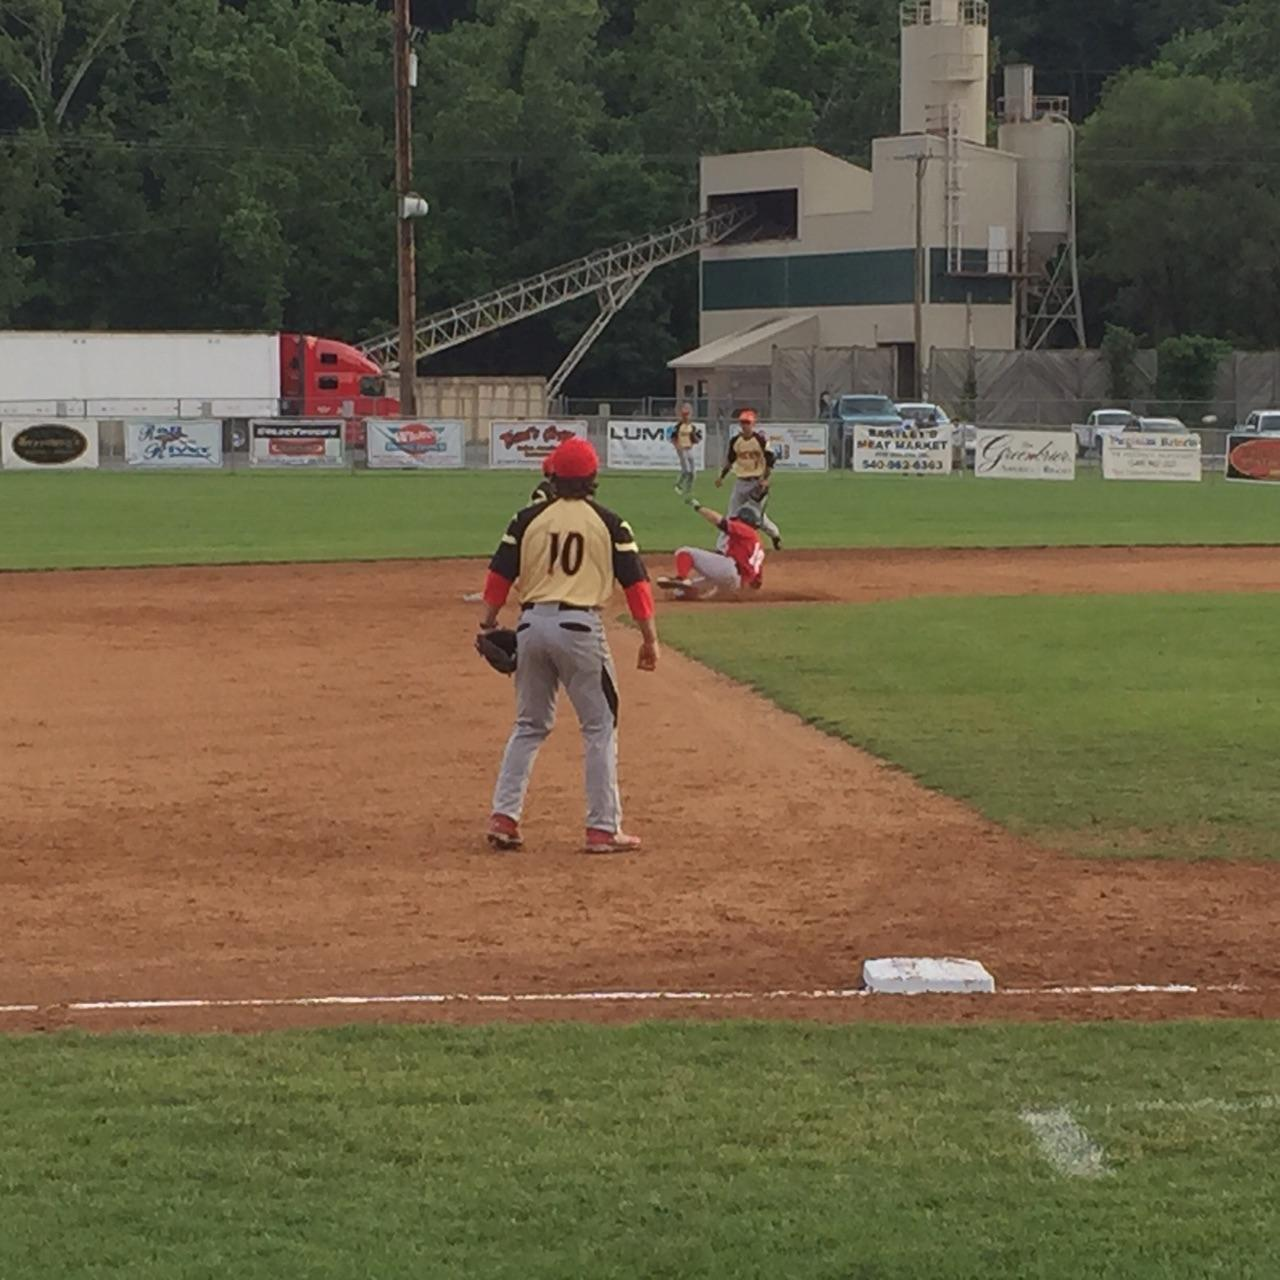 Kameron Esthay (Baylor) Stealing Second at Covington on June 5